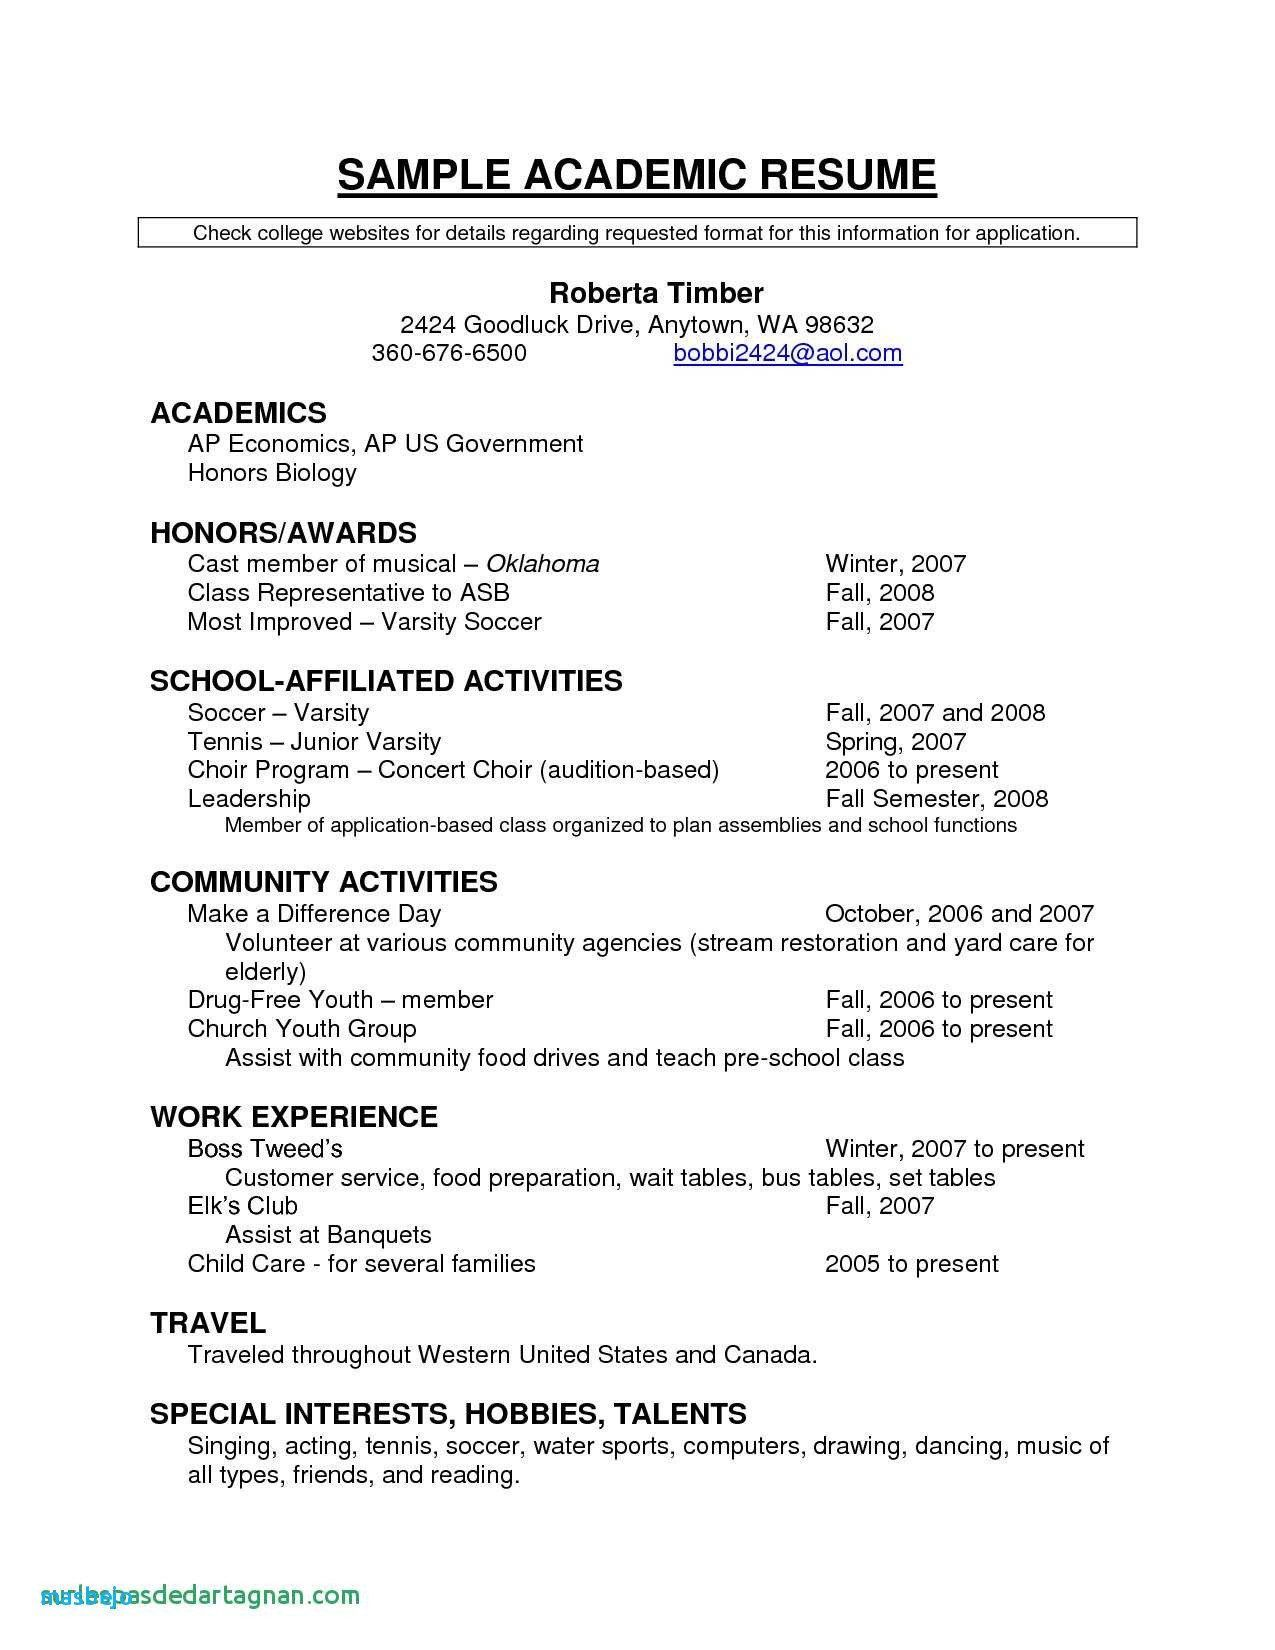 32 Awesome Extra Curricular Activities for Resume in 2020